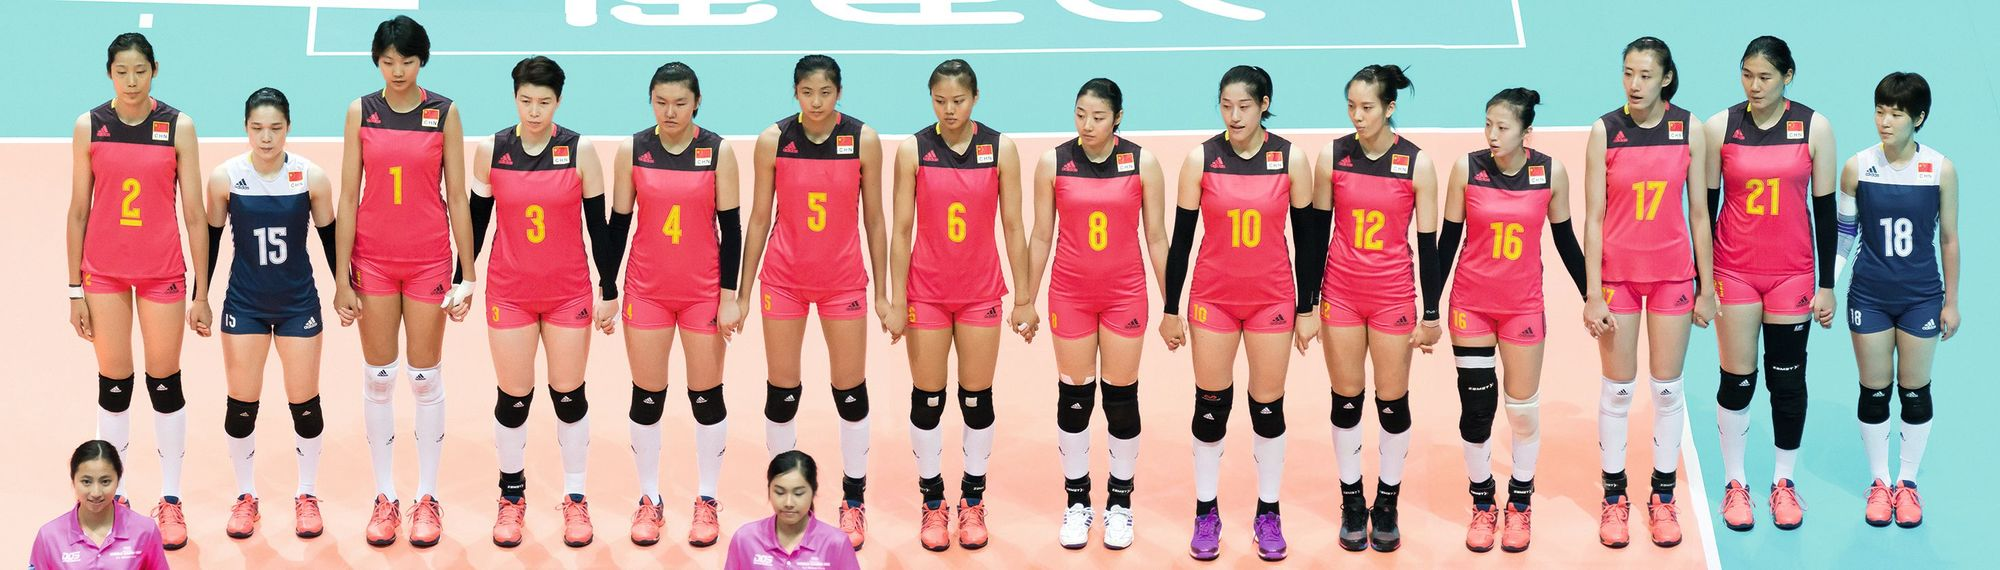 Équipe de Volley Chinoise